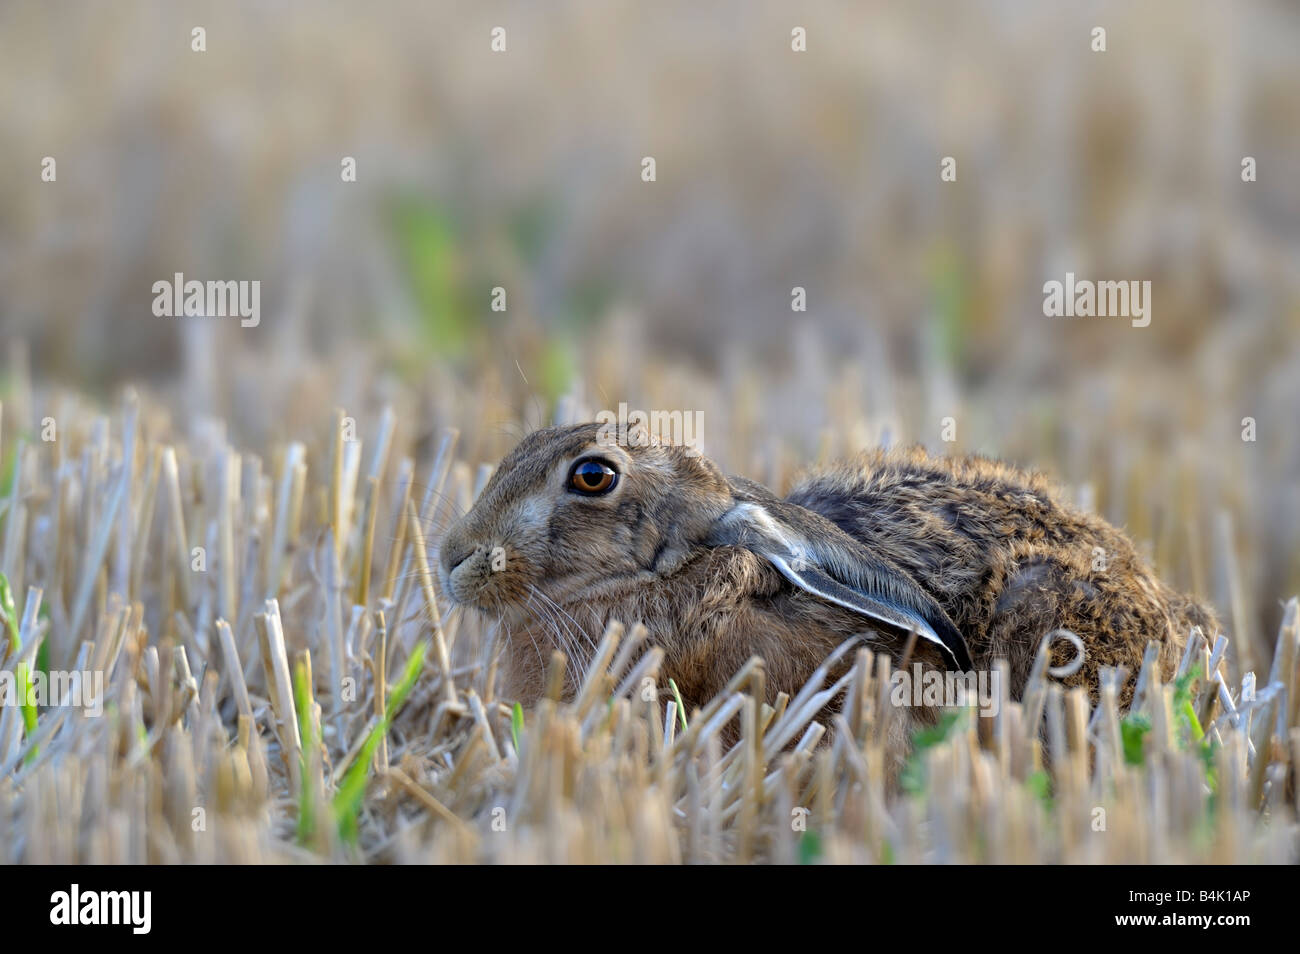 Brown Hare (Lepus europaeus) laid down in a stubble field. - Stock Image